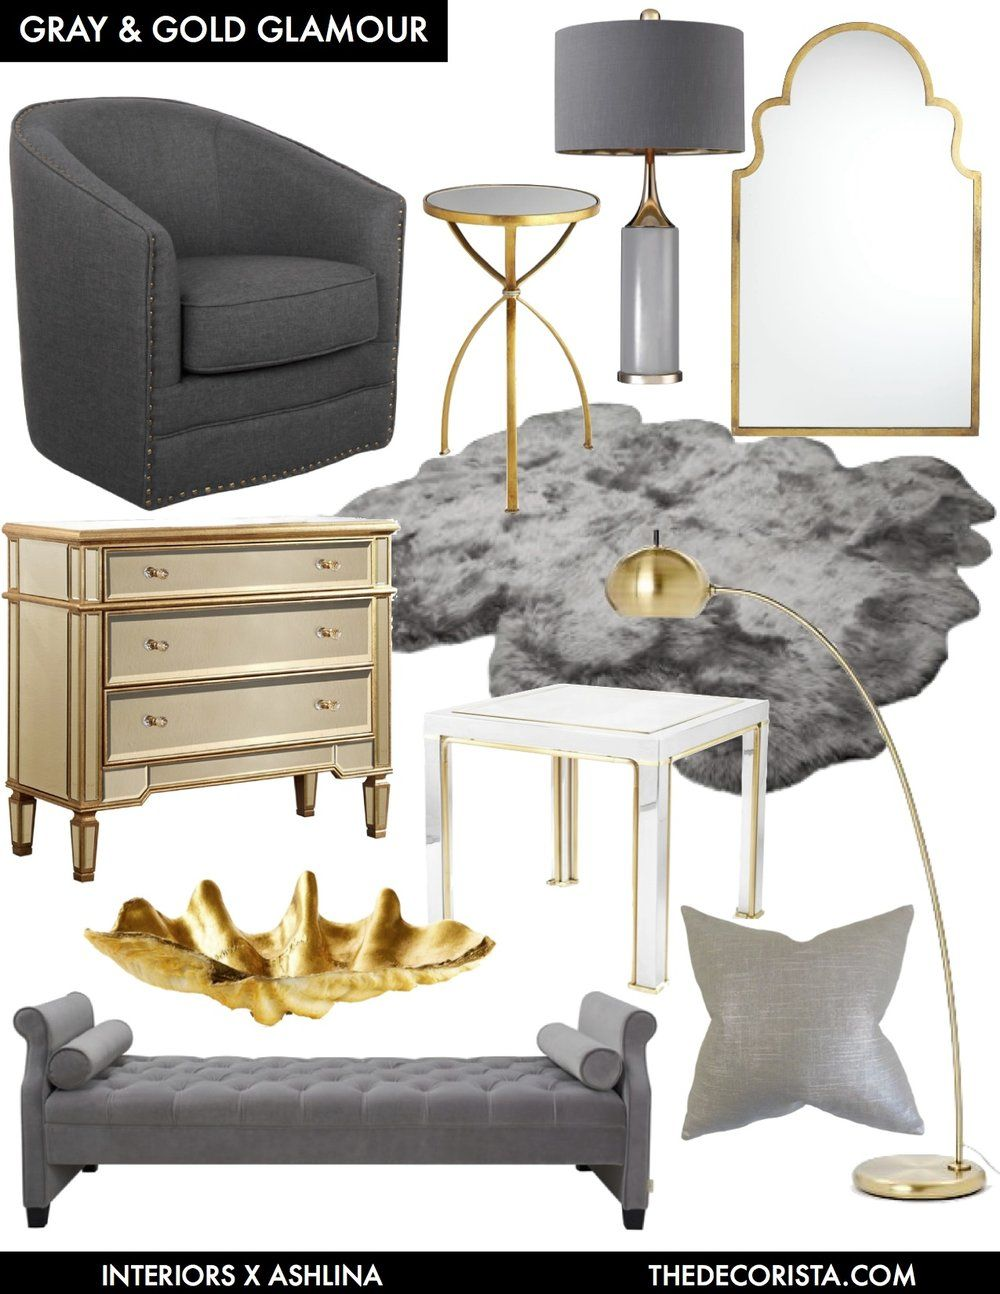 Color Crushing Decorating With Gray And Gold For Glamour